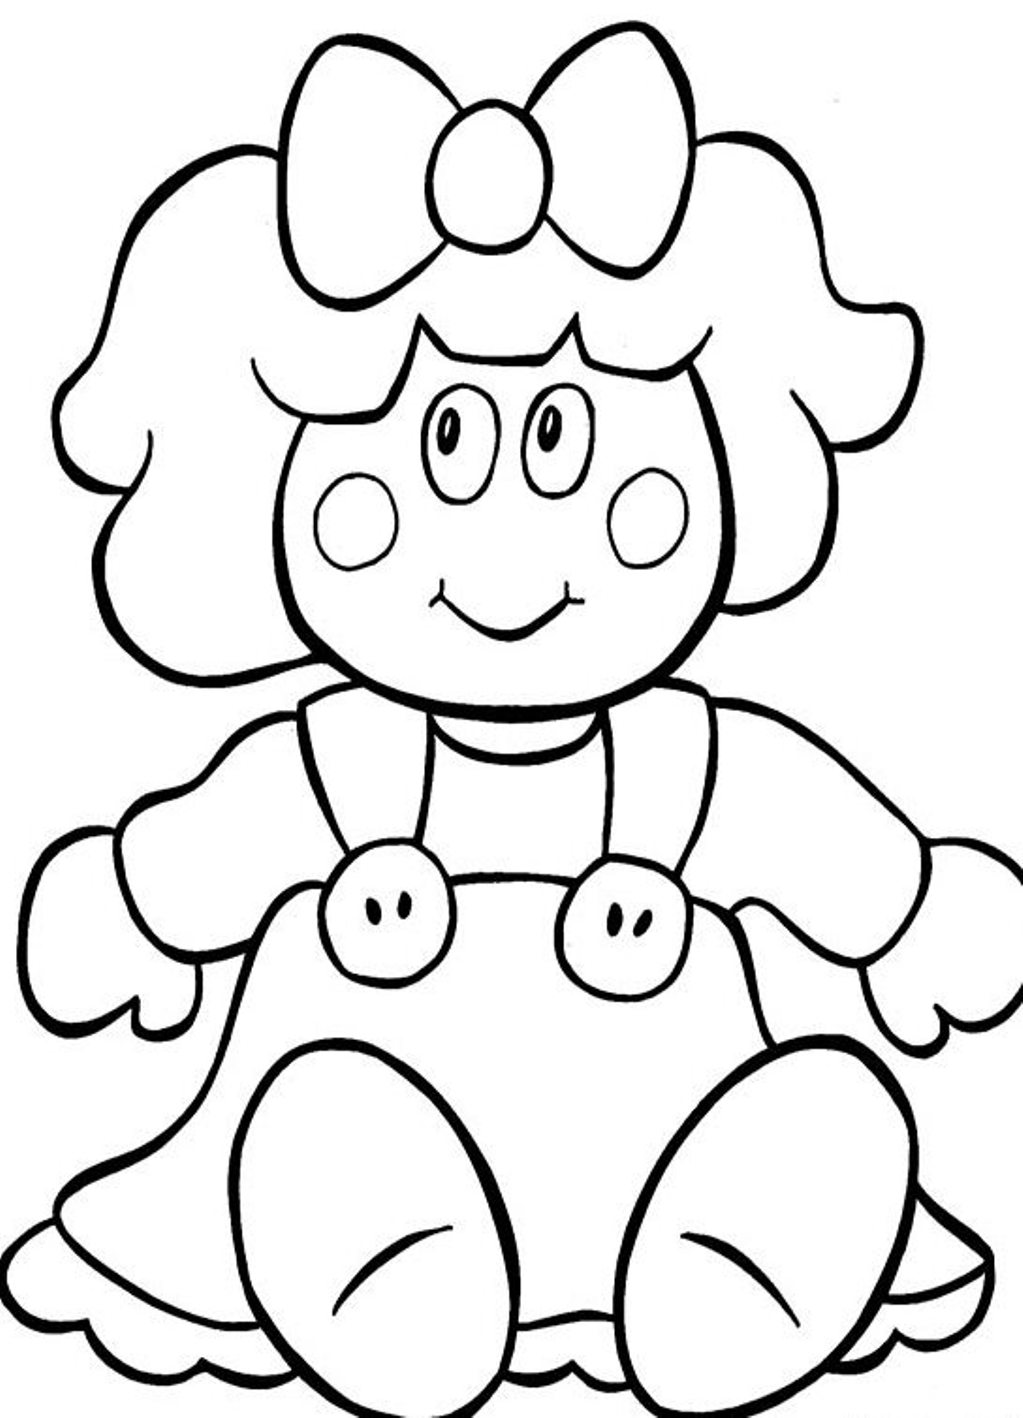 doll coloring page doll coloring pages getcoloringpagescom coloring doll page